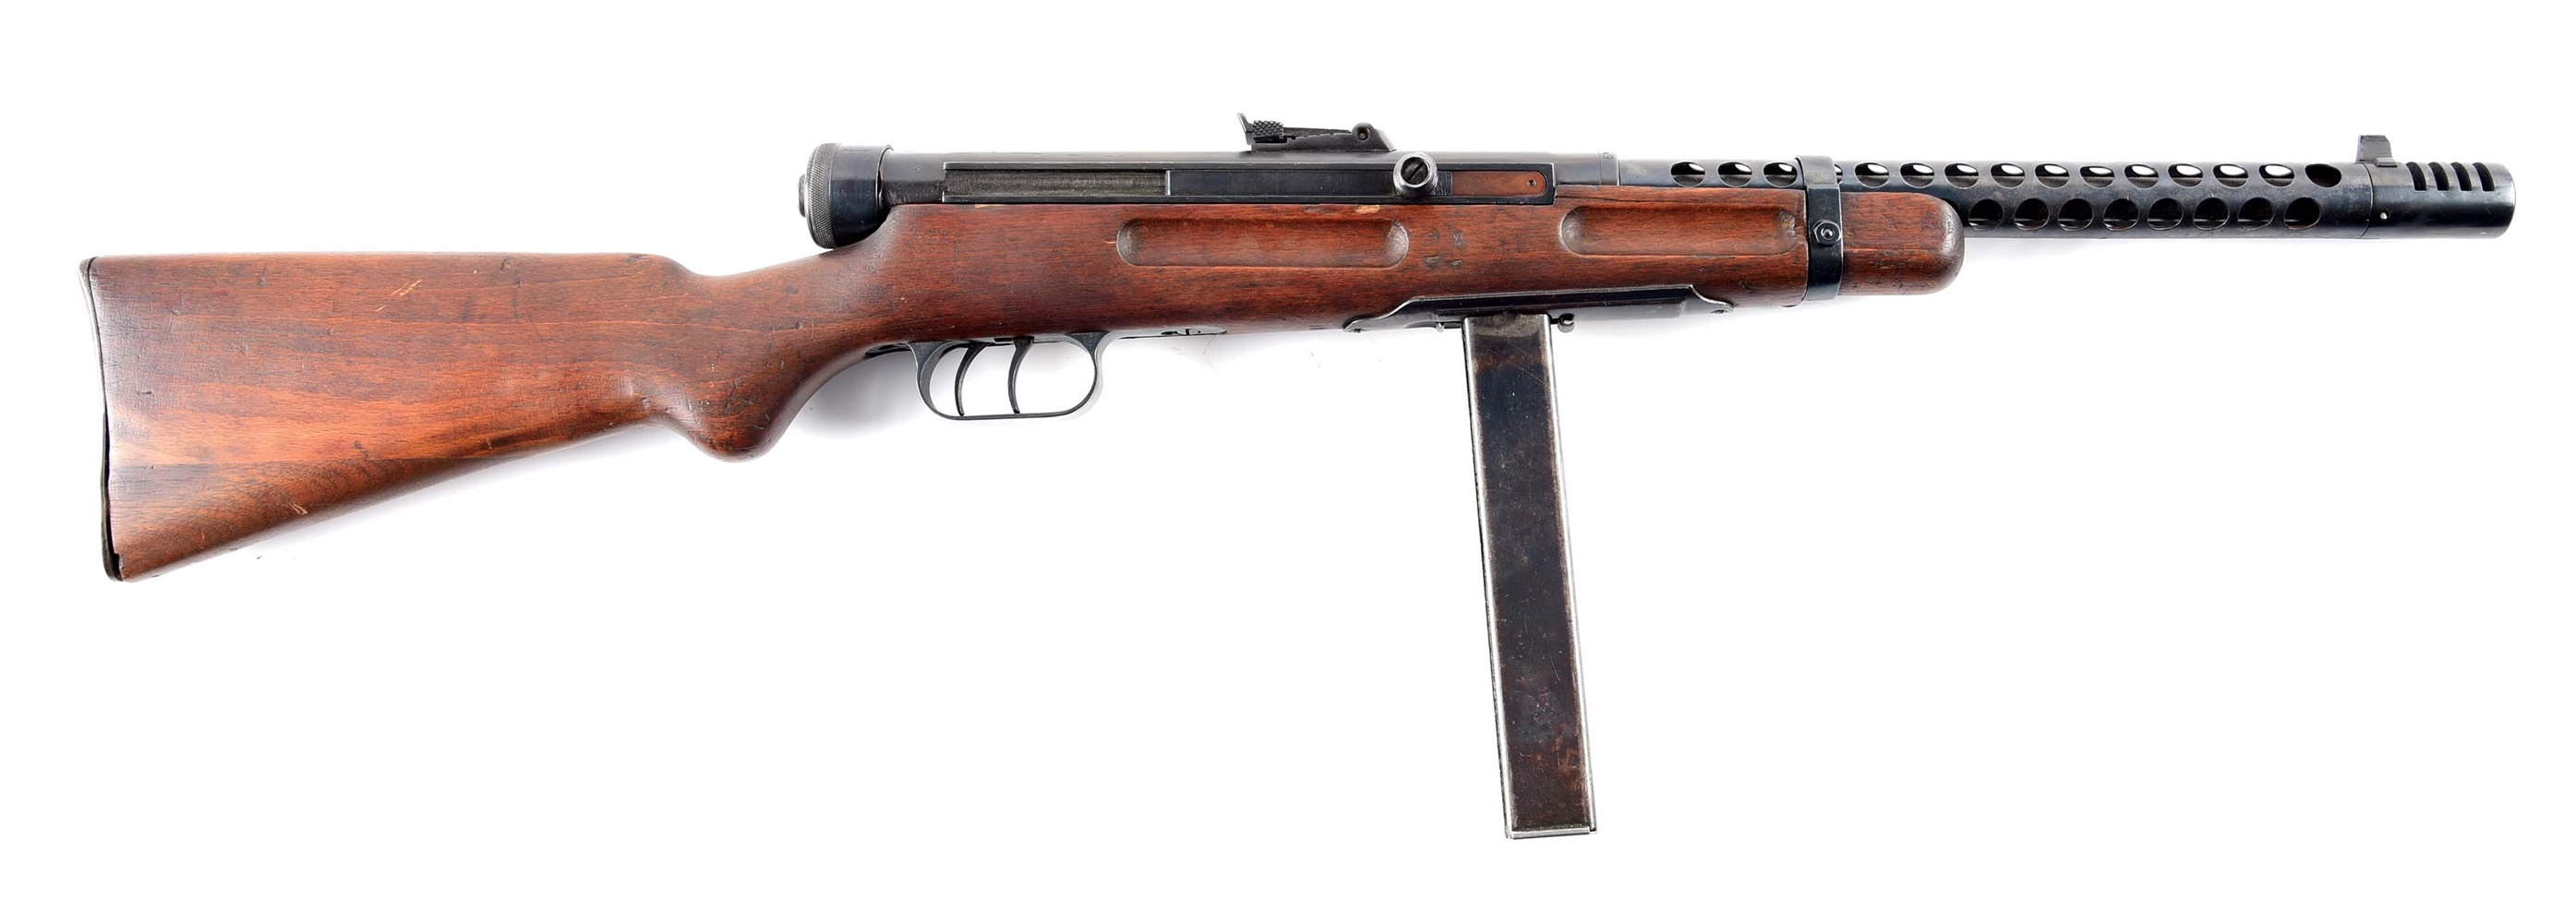 (N) HIGHLY DESIRABLE WORLD WAR 2 ITALIAN BERETTA MODEL 38A MACHINE GUN (CURIO & RELIC).